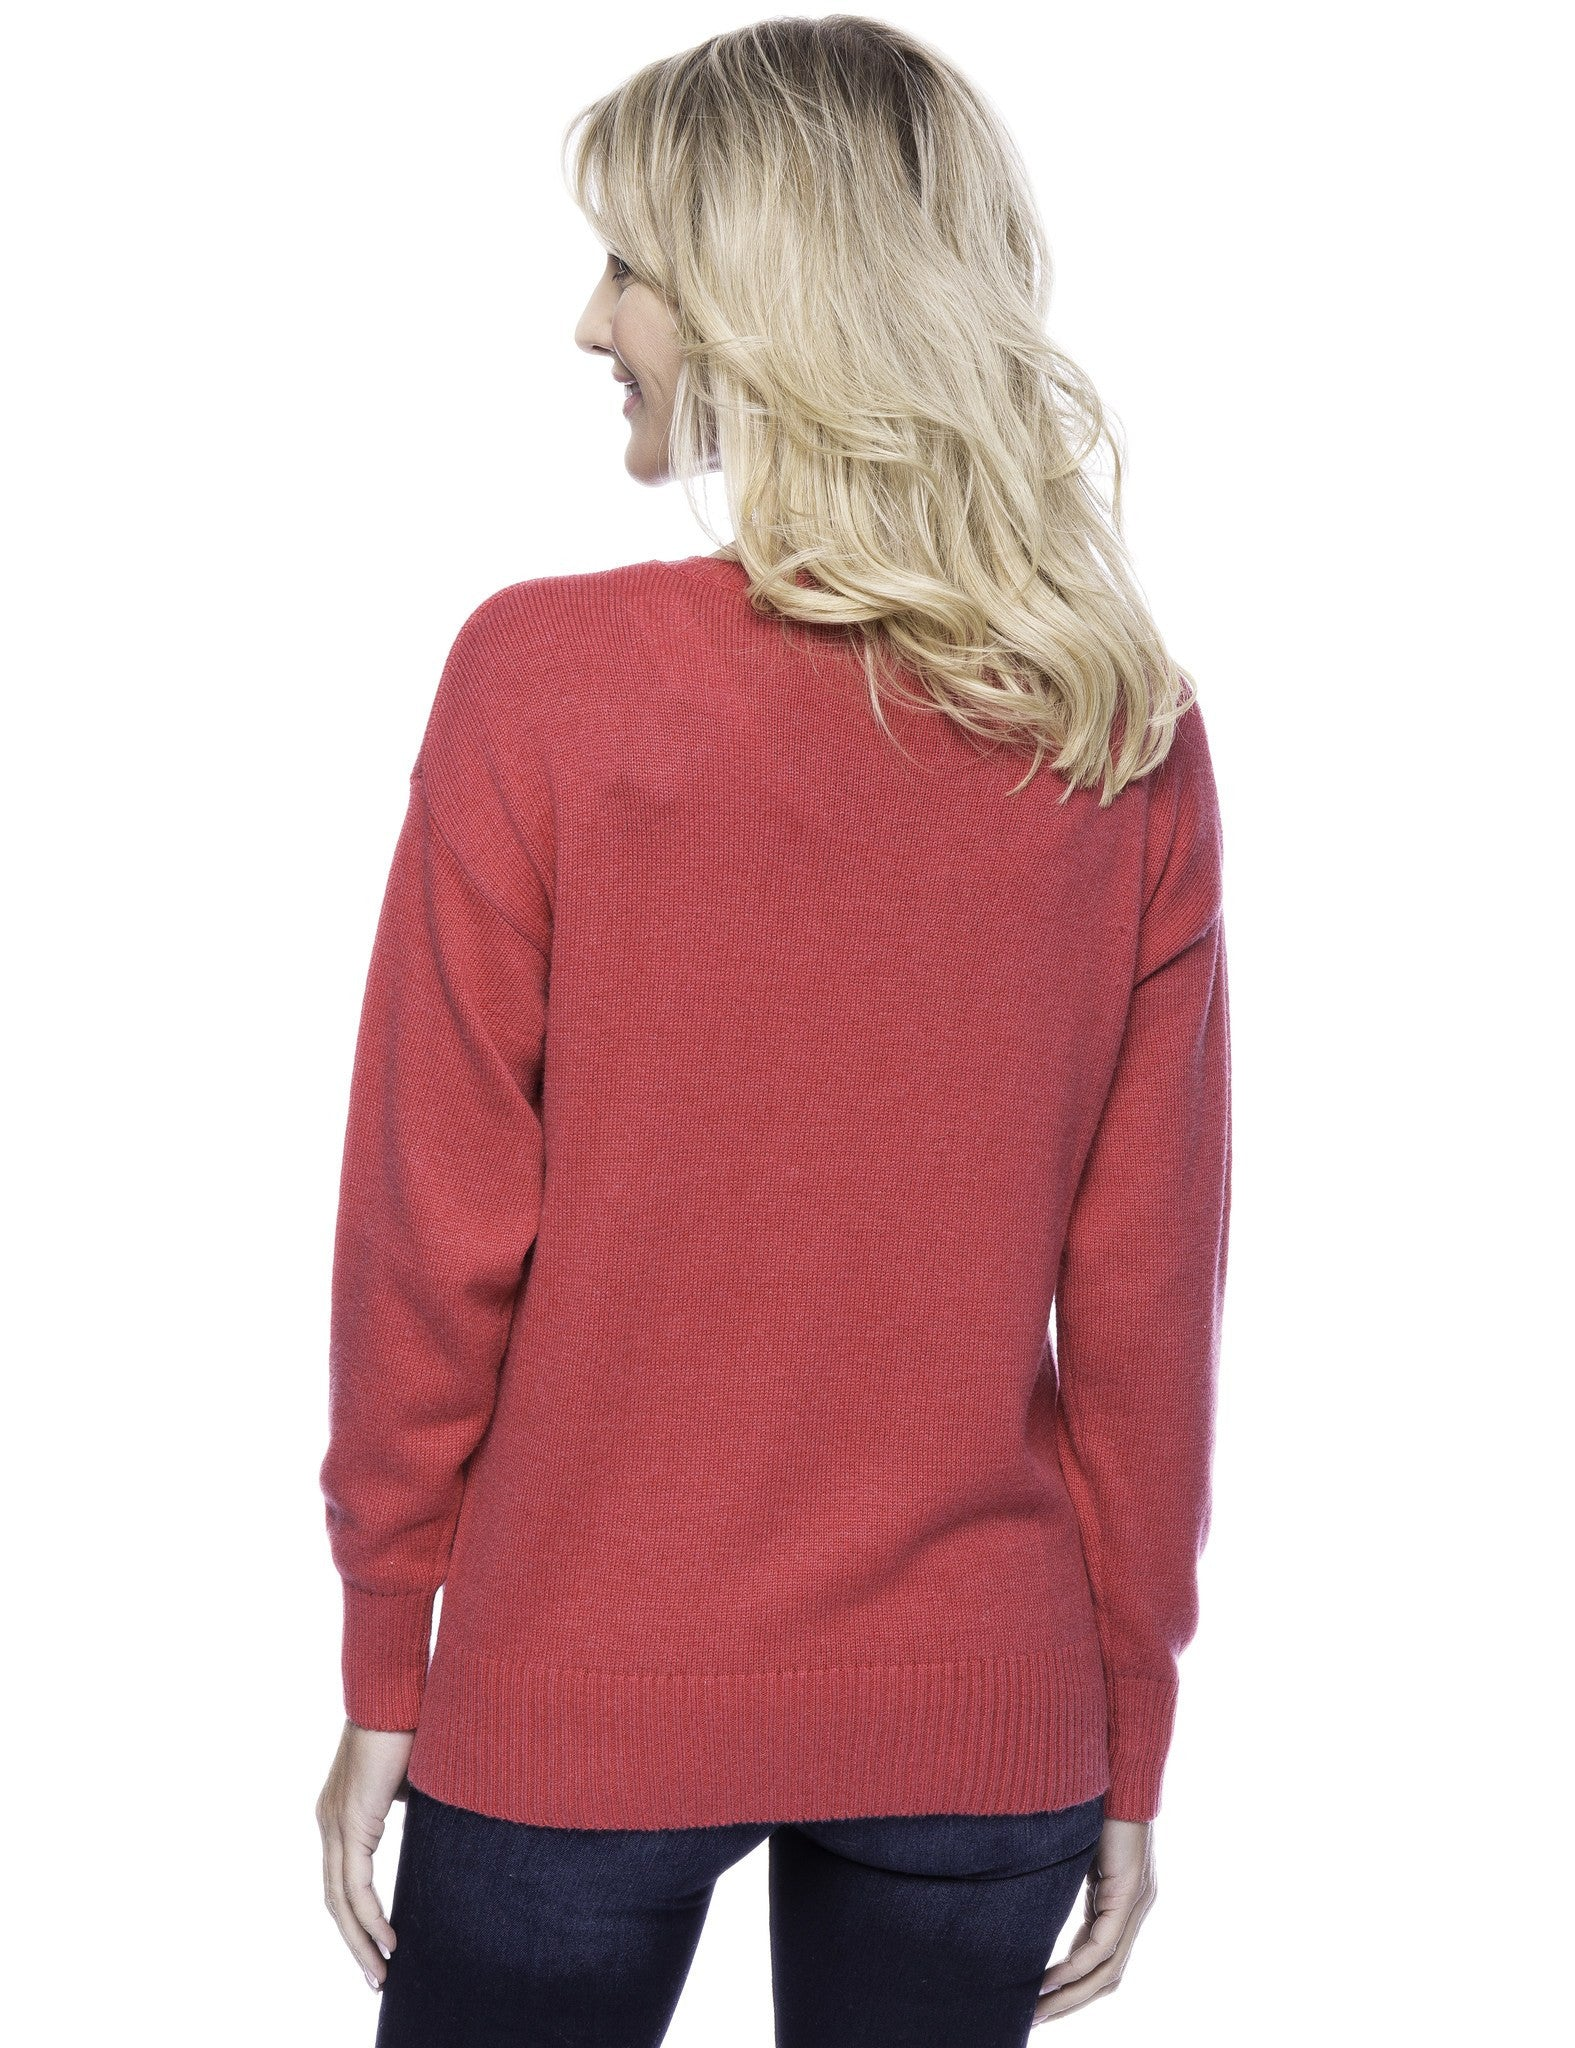 Tocco Reale Women's Cashmere Blend Crew Neck Sweater with Side Zip - Fuchsia